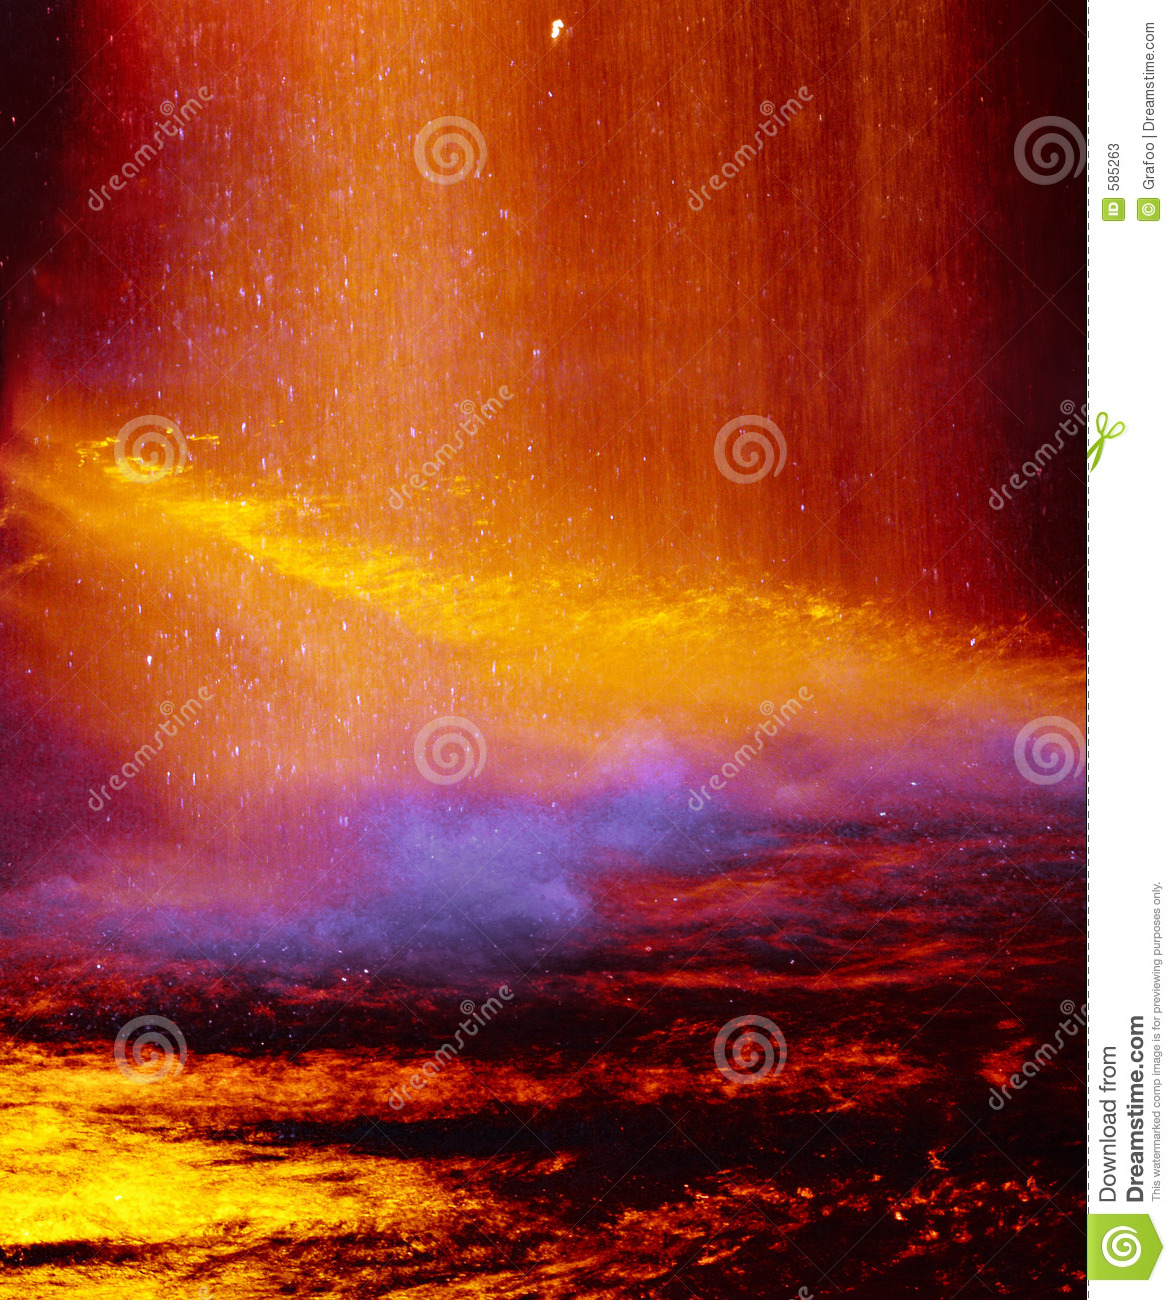 Warm abstract colors